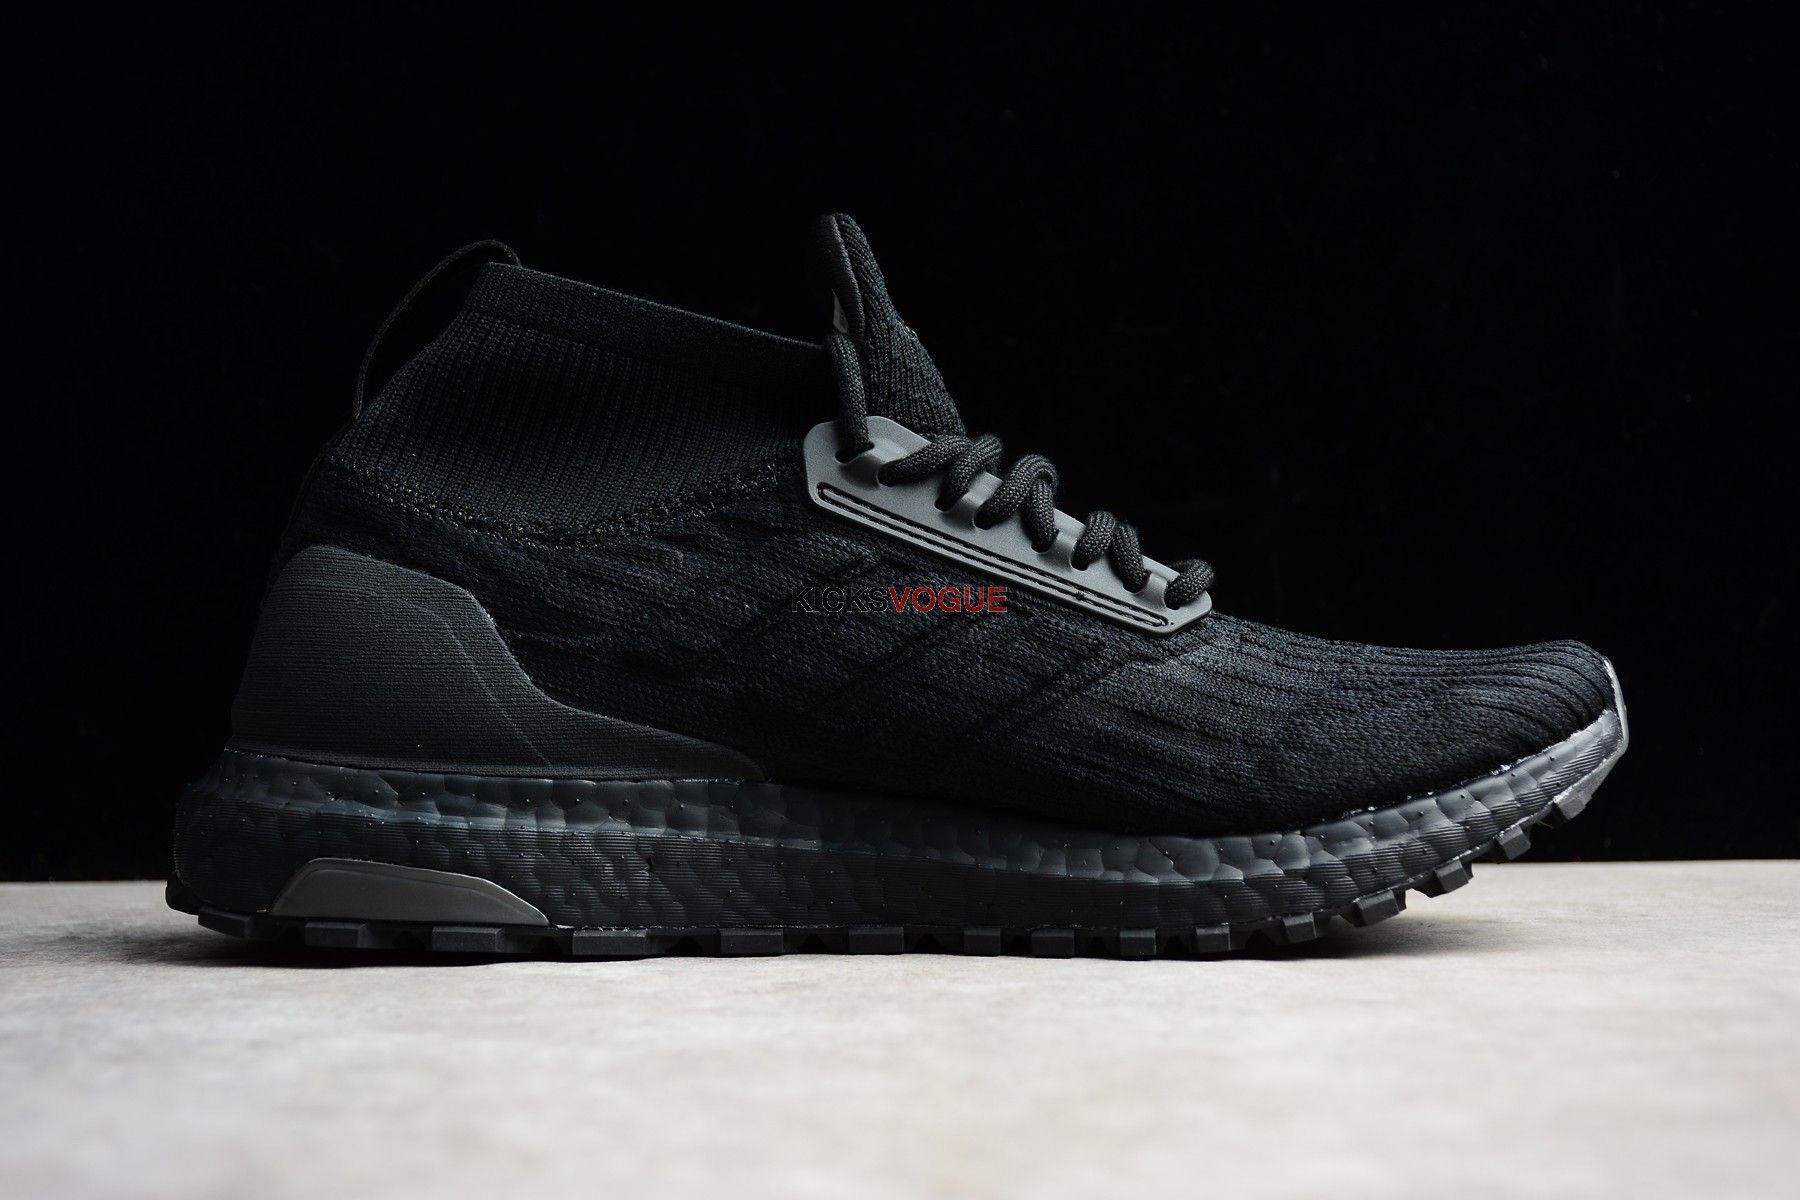 e184309732b41 ADIDAS ULTRA BOOST ATR MID PRIMEKNIT triple black BY8925